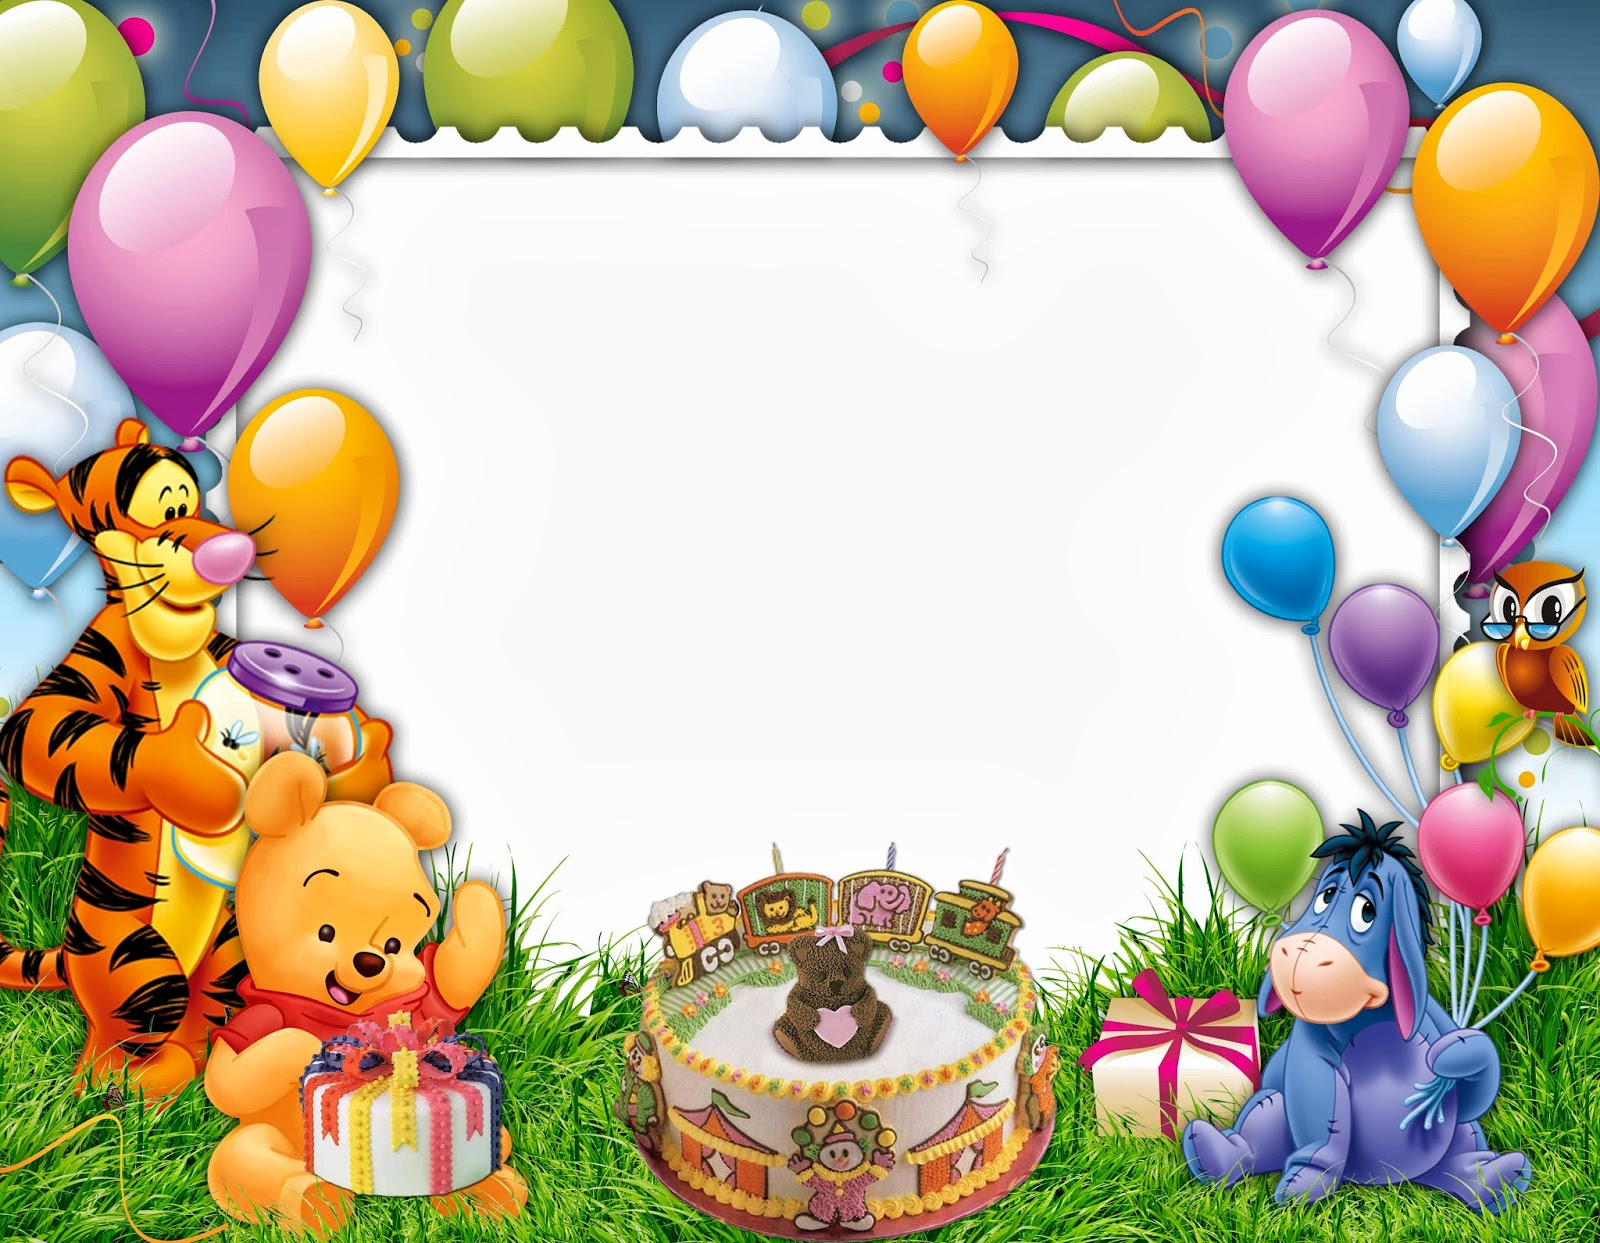 11 Baby Birthday Background Psd Images Free Birthday Psd